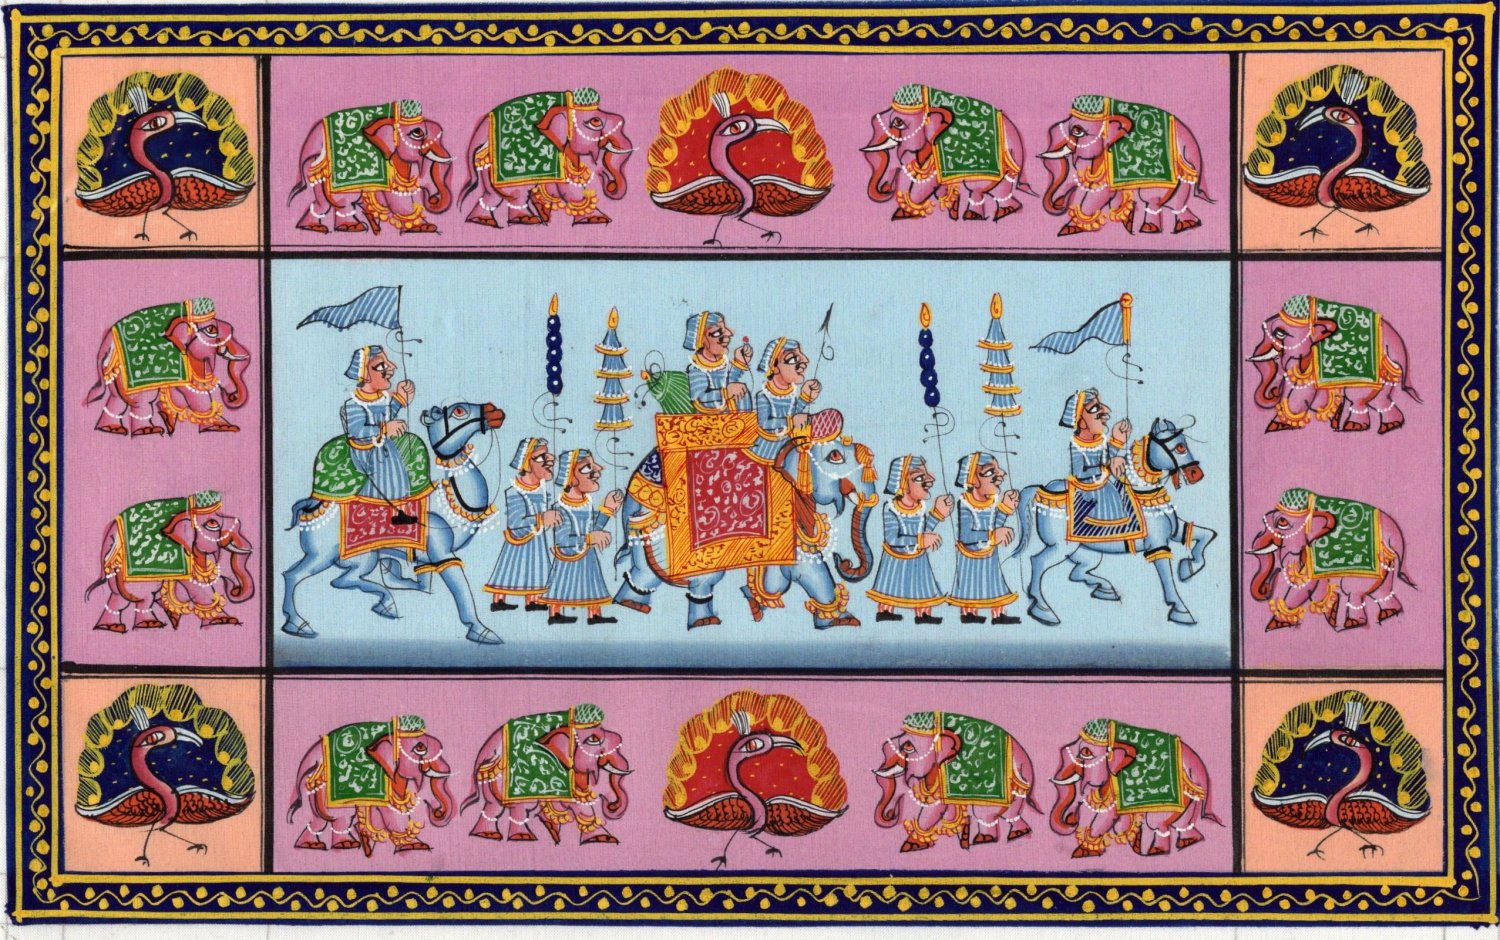 Rajasthan Miniature Painting Indian Ethnic Royal Emperor Procession Folk Artwork